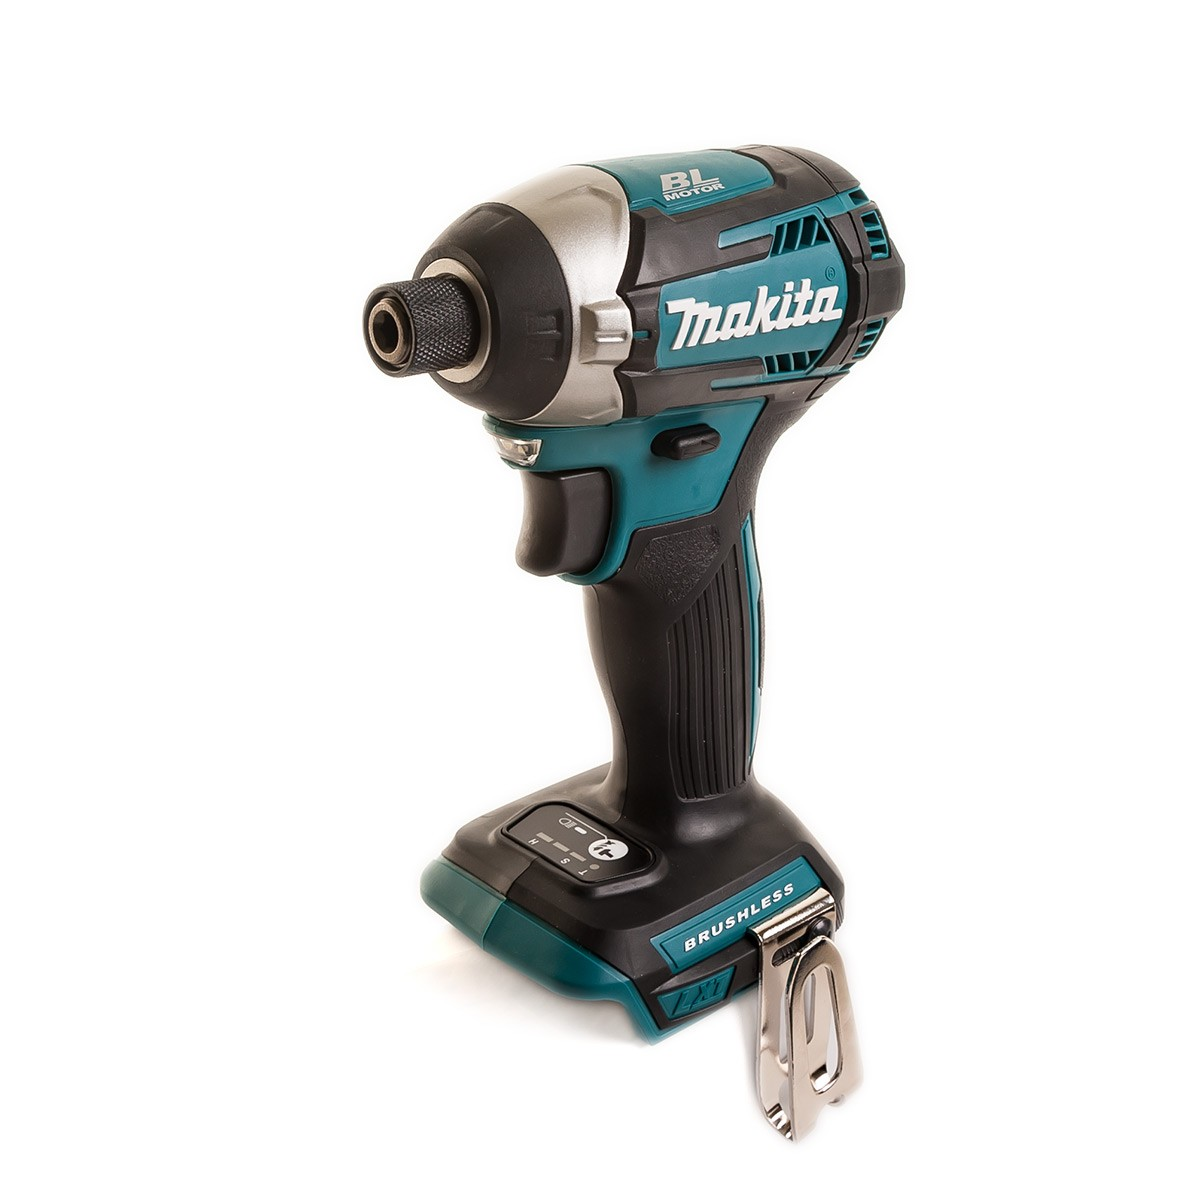 Makita DTD154Z LXT 18v Li-Ion Brushless Cordless Impact Driver Body Only